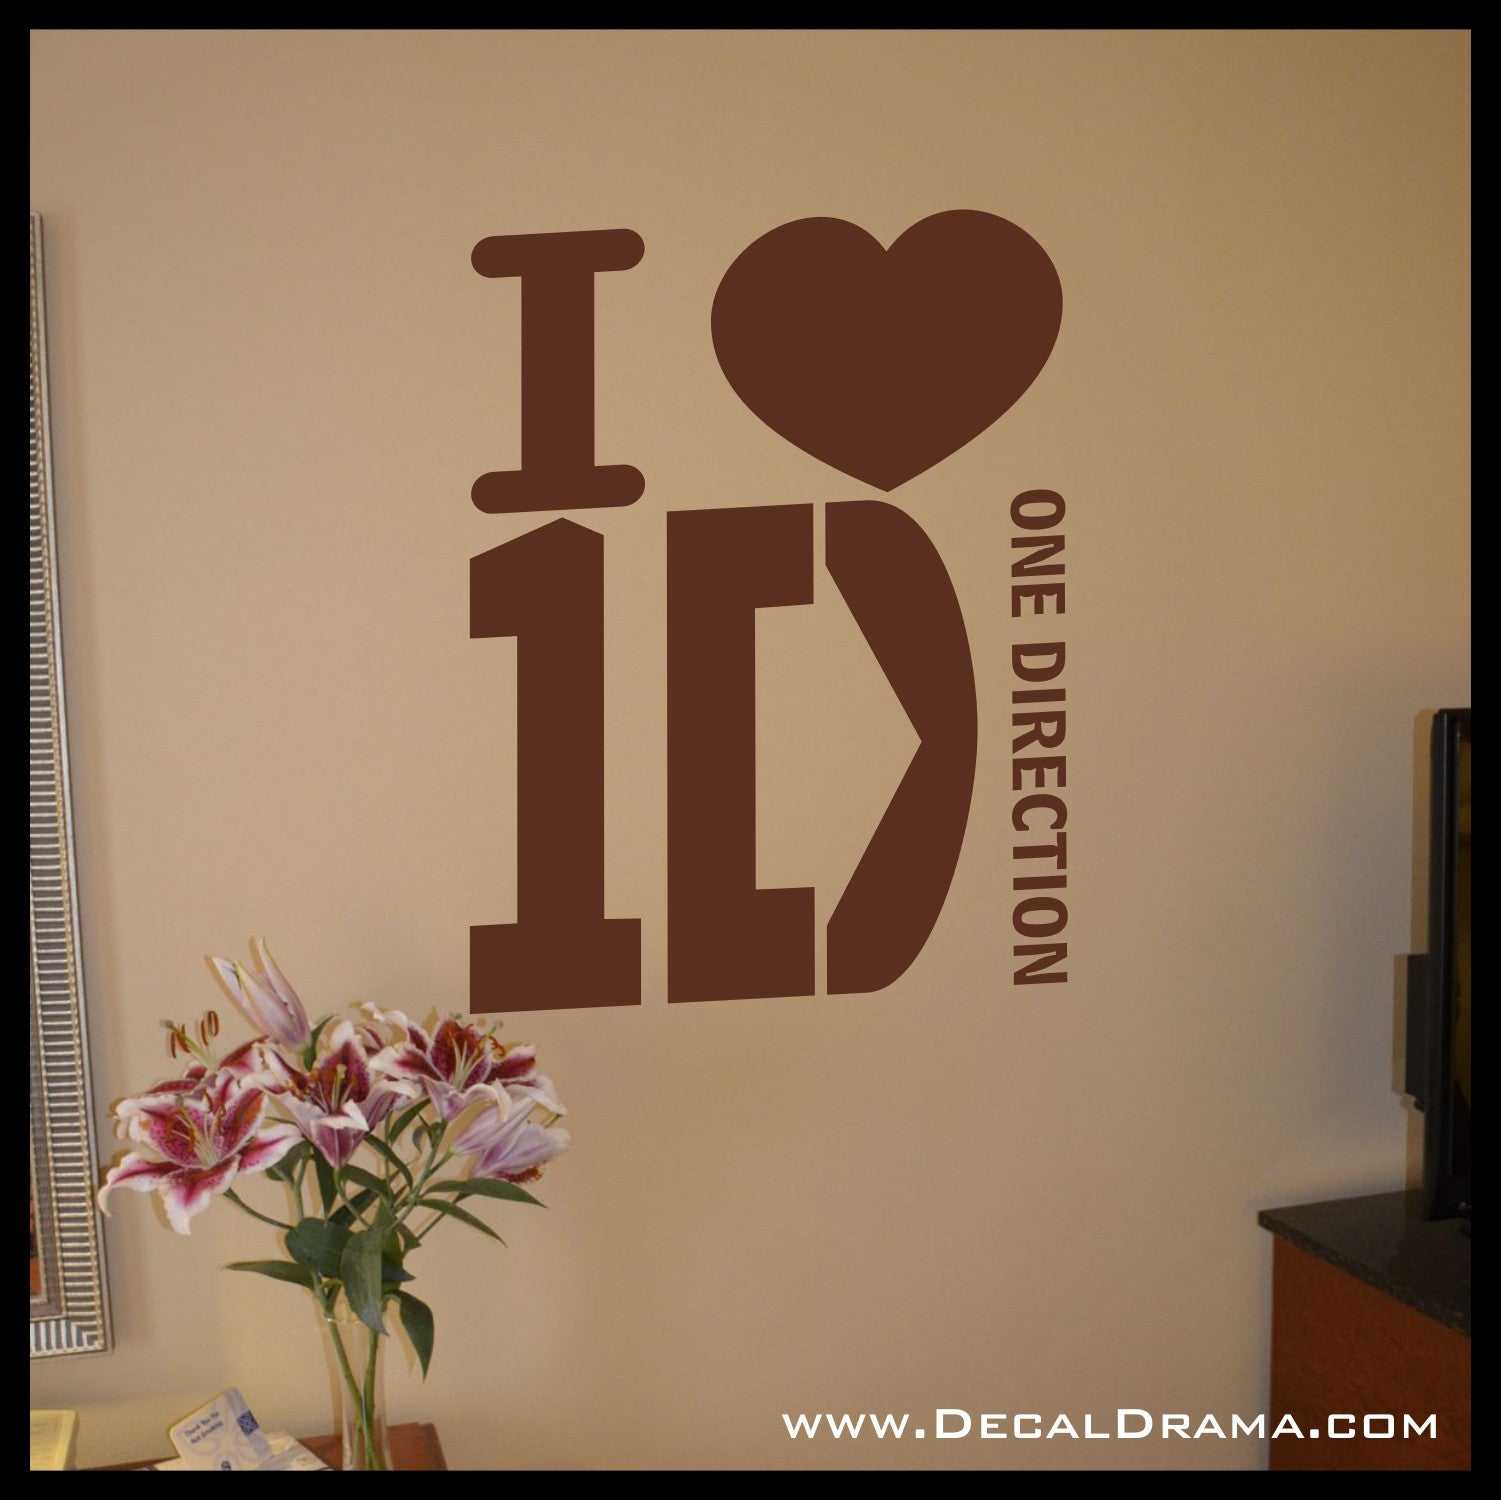 I Love 1D I HEART One Direction Inspired Fan Art Vinyl Wall Decal